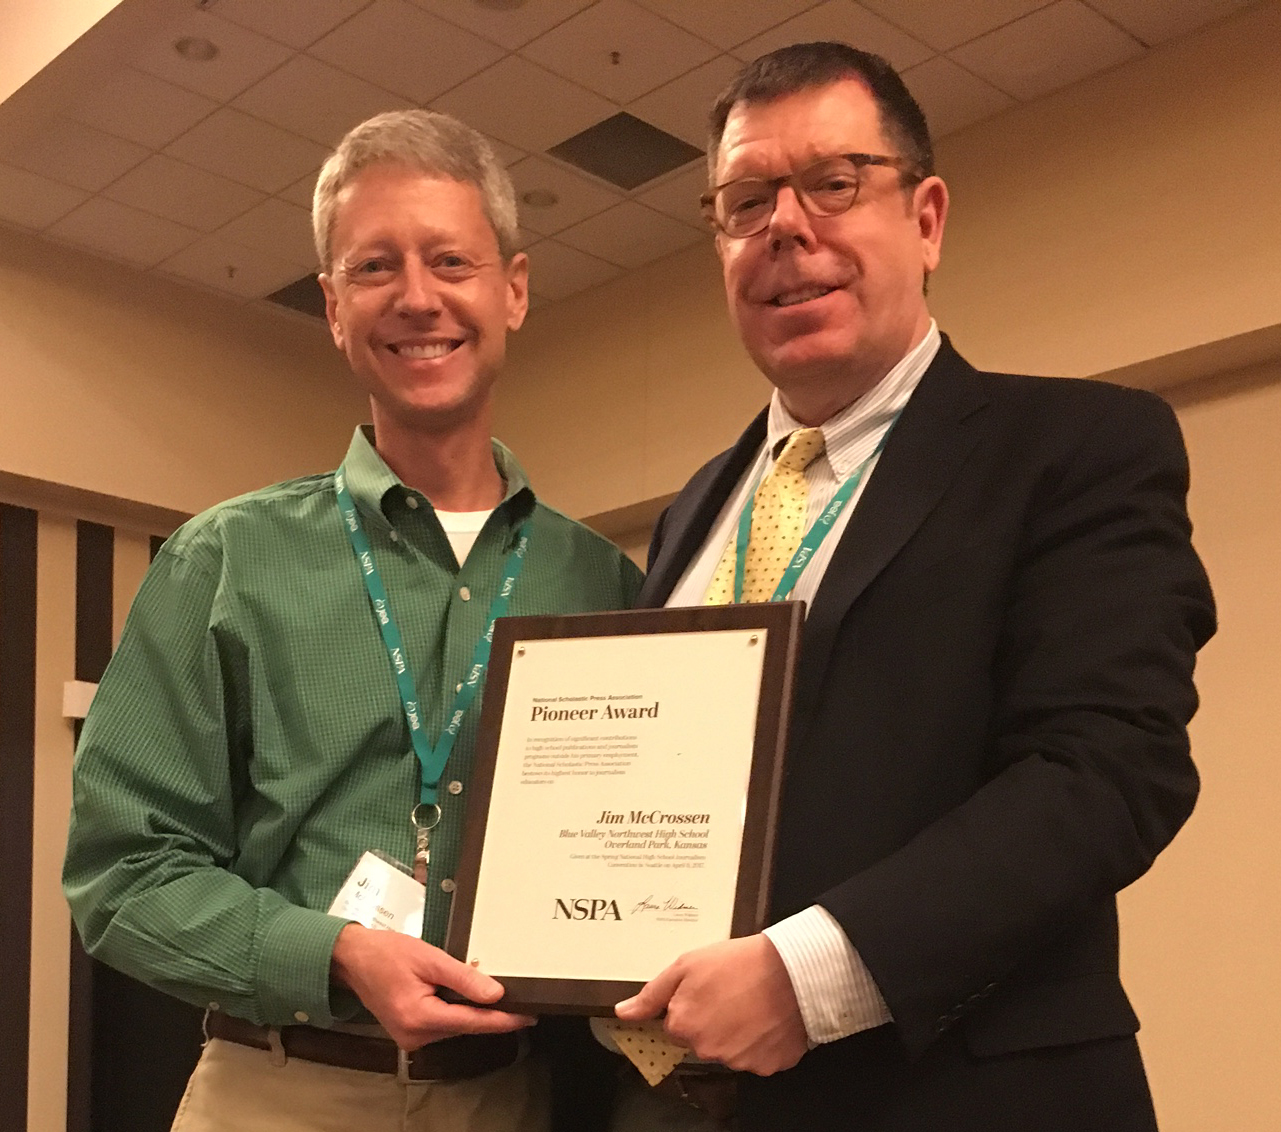 Jim McCrossen  (j'84) was awarded the National Scholastic Press Association Pioneer Award at the Journalism Education Association. McCrossen, the longtime teacher and adviser at Blue Valley Northwest High School, was honored for his long tenure of advising and service to the Kansas Scholastic Press Association board and summer workshops, including KU's summer journalism workshop.